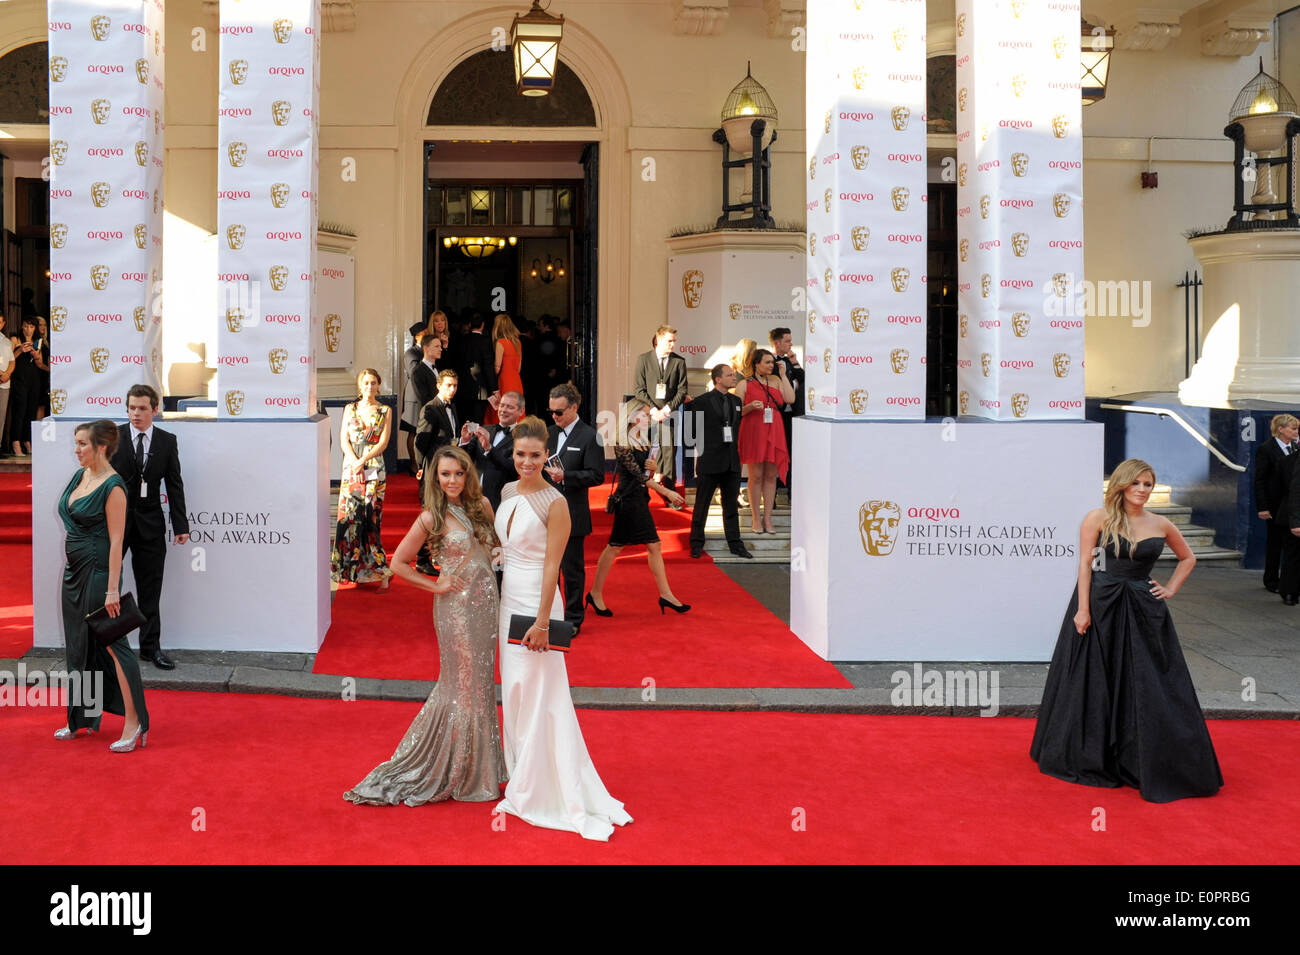 London, UK, 18/05/2014 : The Arqiva BAFTA TV Awards Red Carpet Arrivals.. Persons Pictured: Michelle Heaton. Picture by Julie Edwards - Stock Image